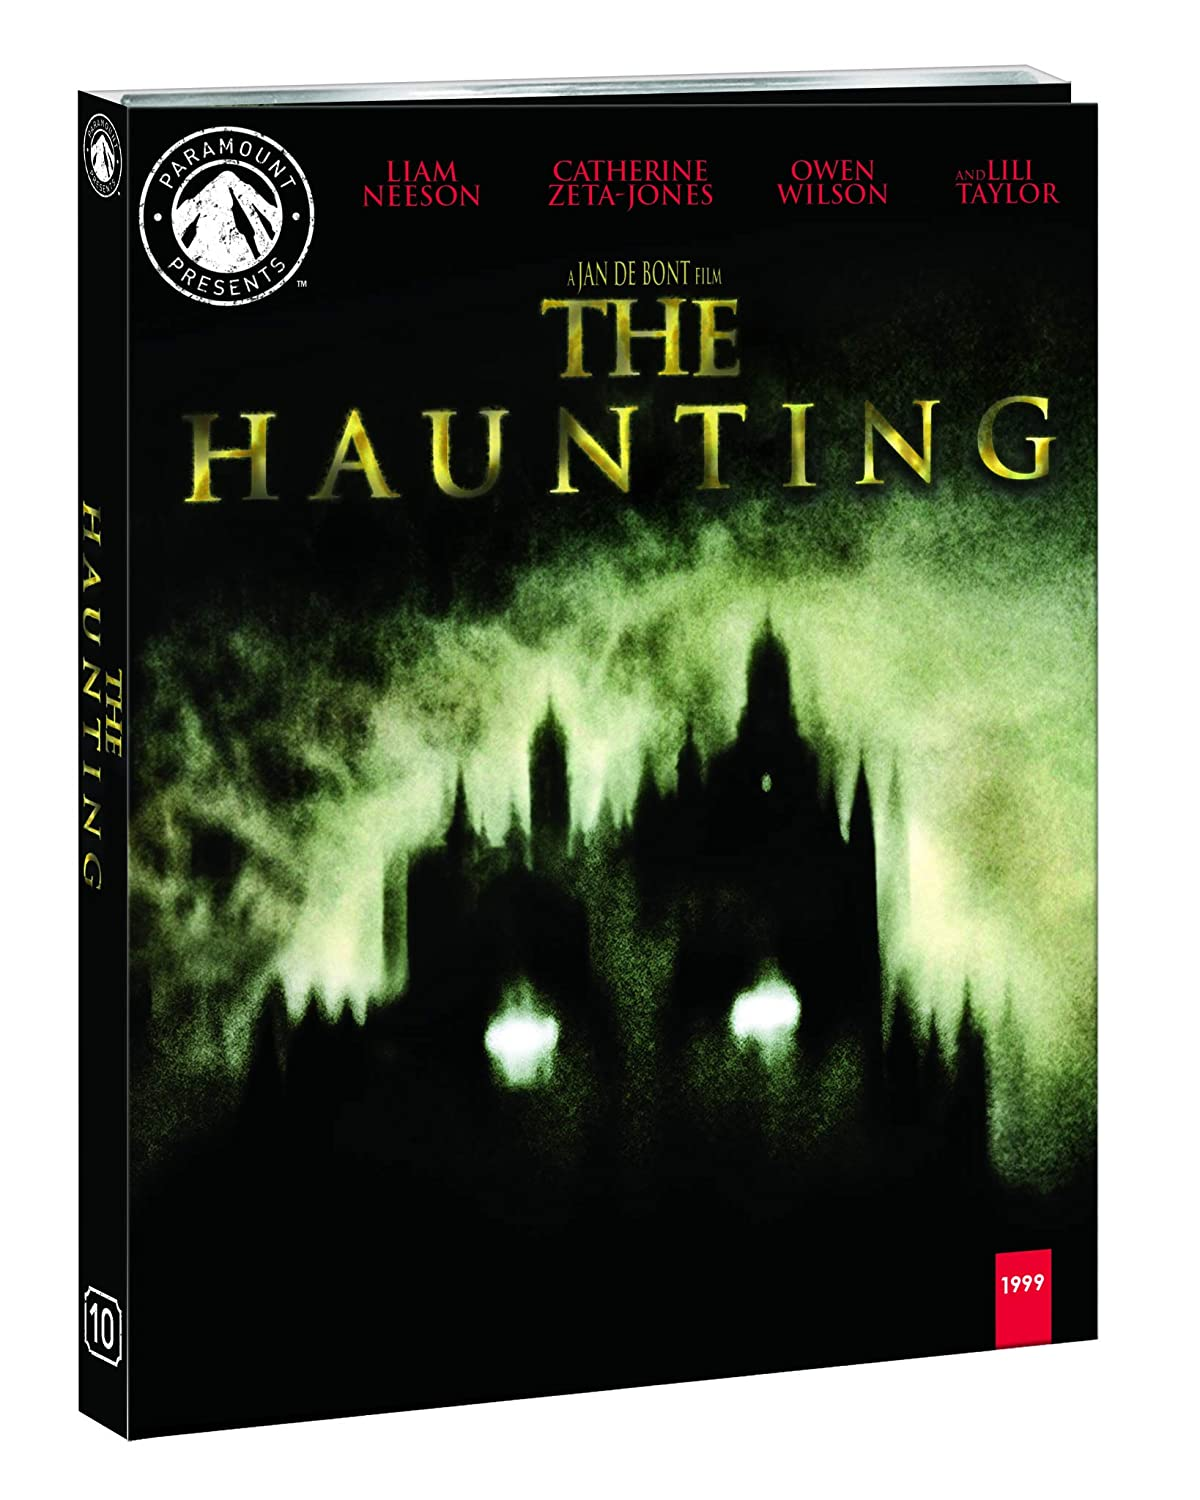 THE HAUNTING NOW AVAILABLE AS PART OF THE PARAMOUNT PRESENTS BLU-RAY LINE